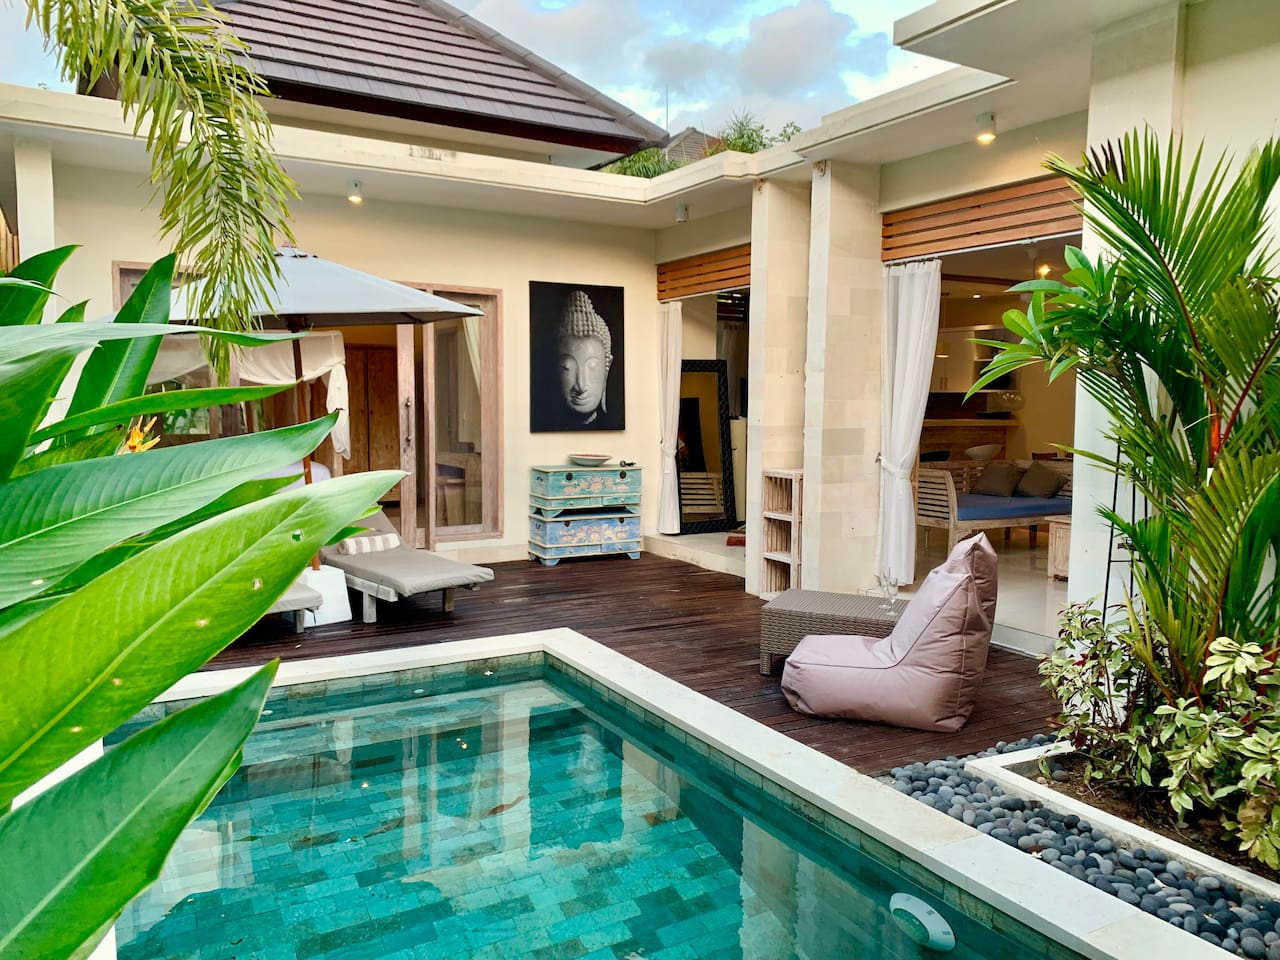 This is from the swimming pool looking into the living area of the villa